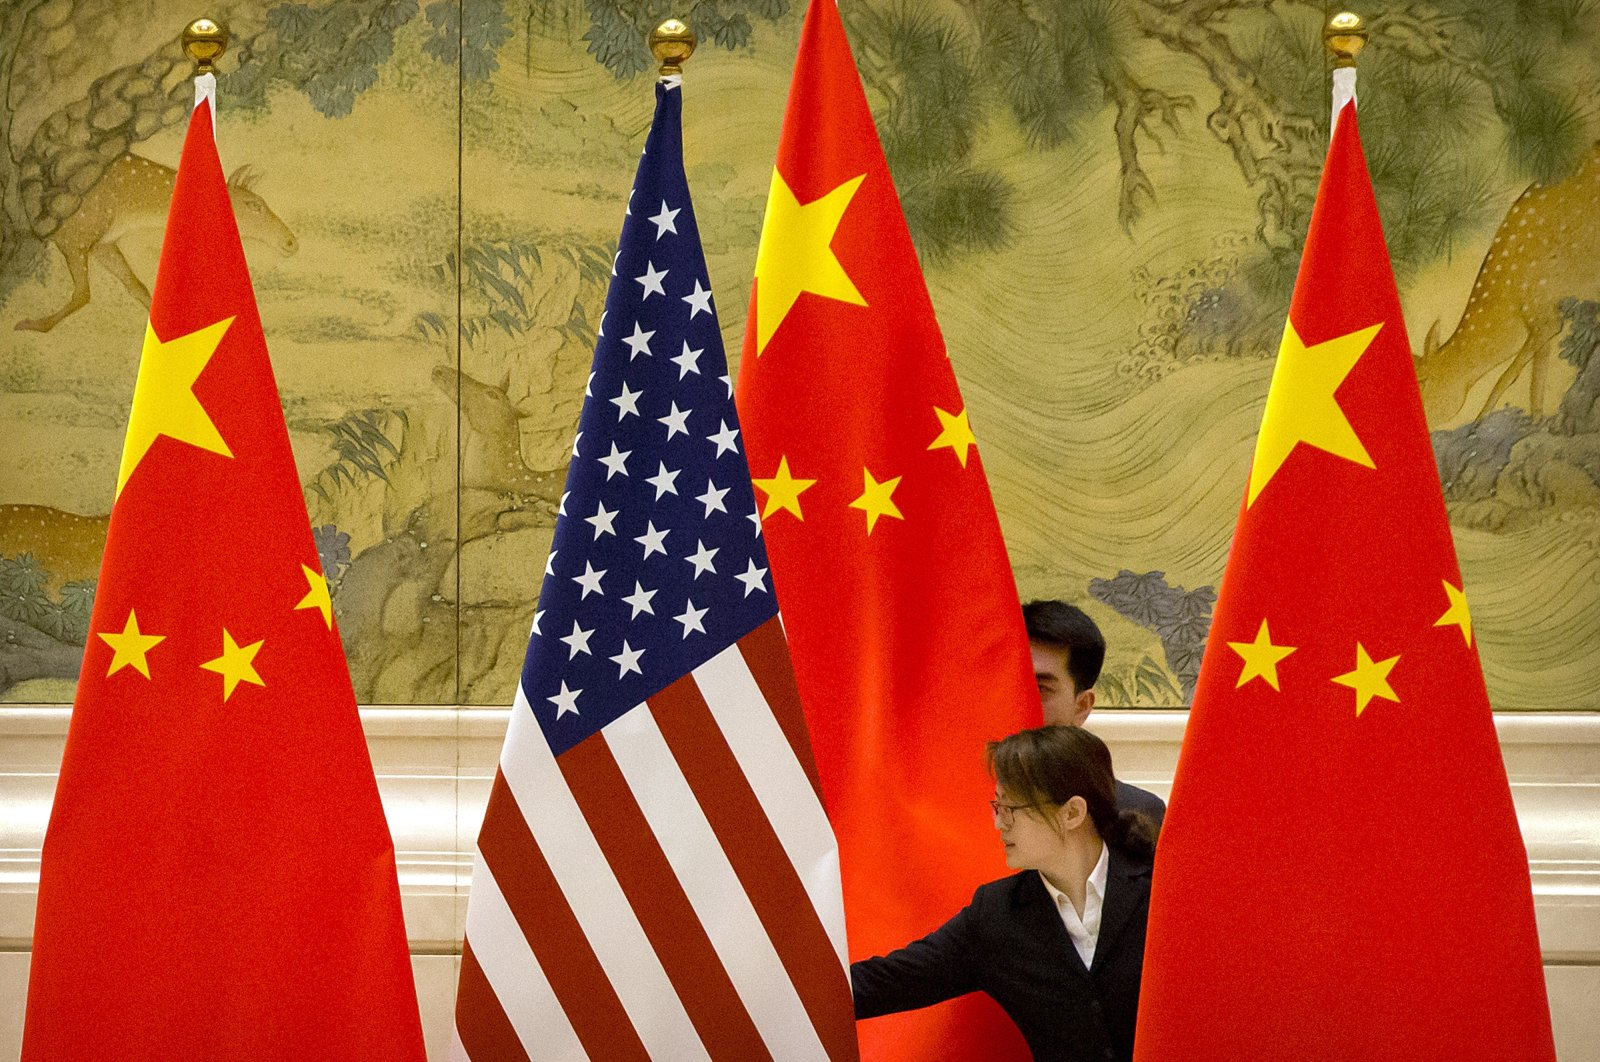 Chinese staffers adjust the U.S. and Chinese flags before the opening session of trade negotiations between U.S. and Chinese trade representatives at the Diaoyutai State Guesthouse in Beijing, Feb. 14, 2019. (AP Photo)